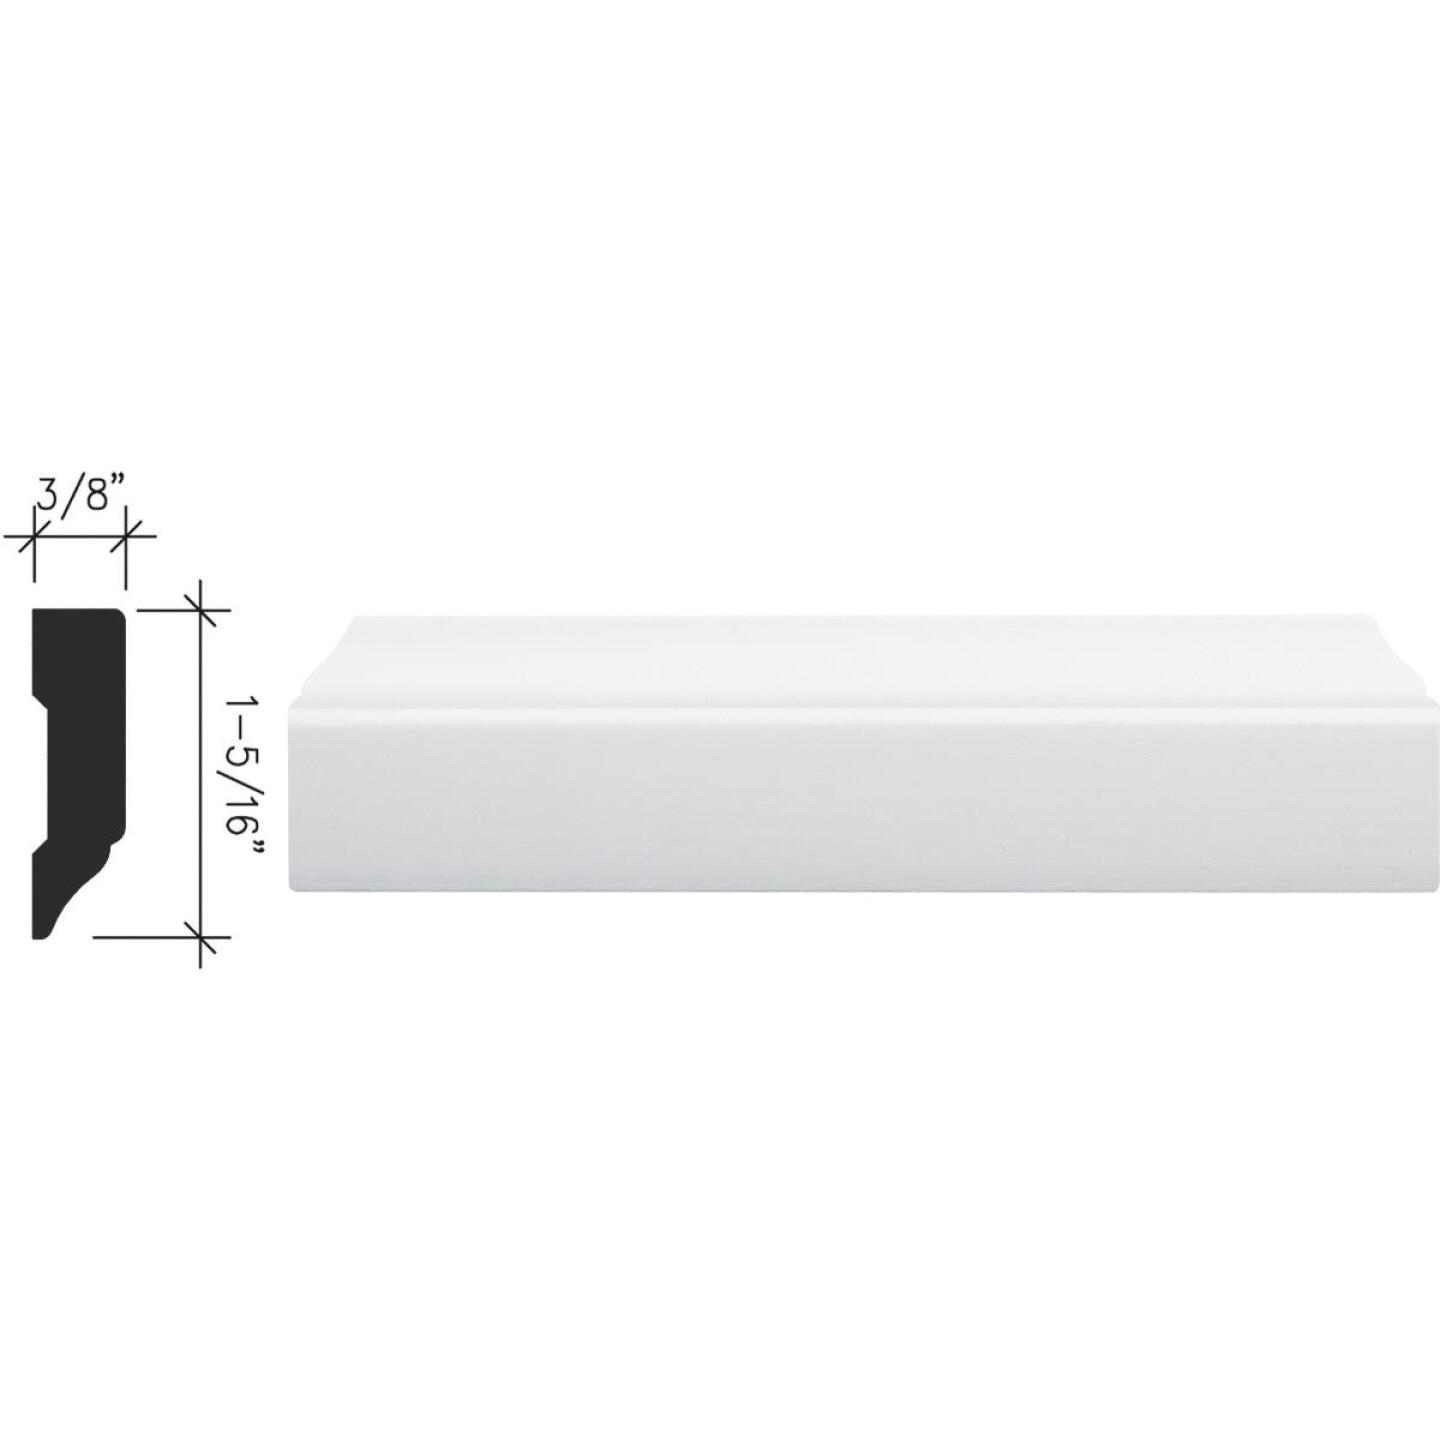 Inteplast Building Products 3/8 In. W. x 1-5/16 In. H. x 7 Ft. L. Crystal White Polystyrene Stop Molding Image 1